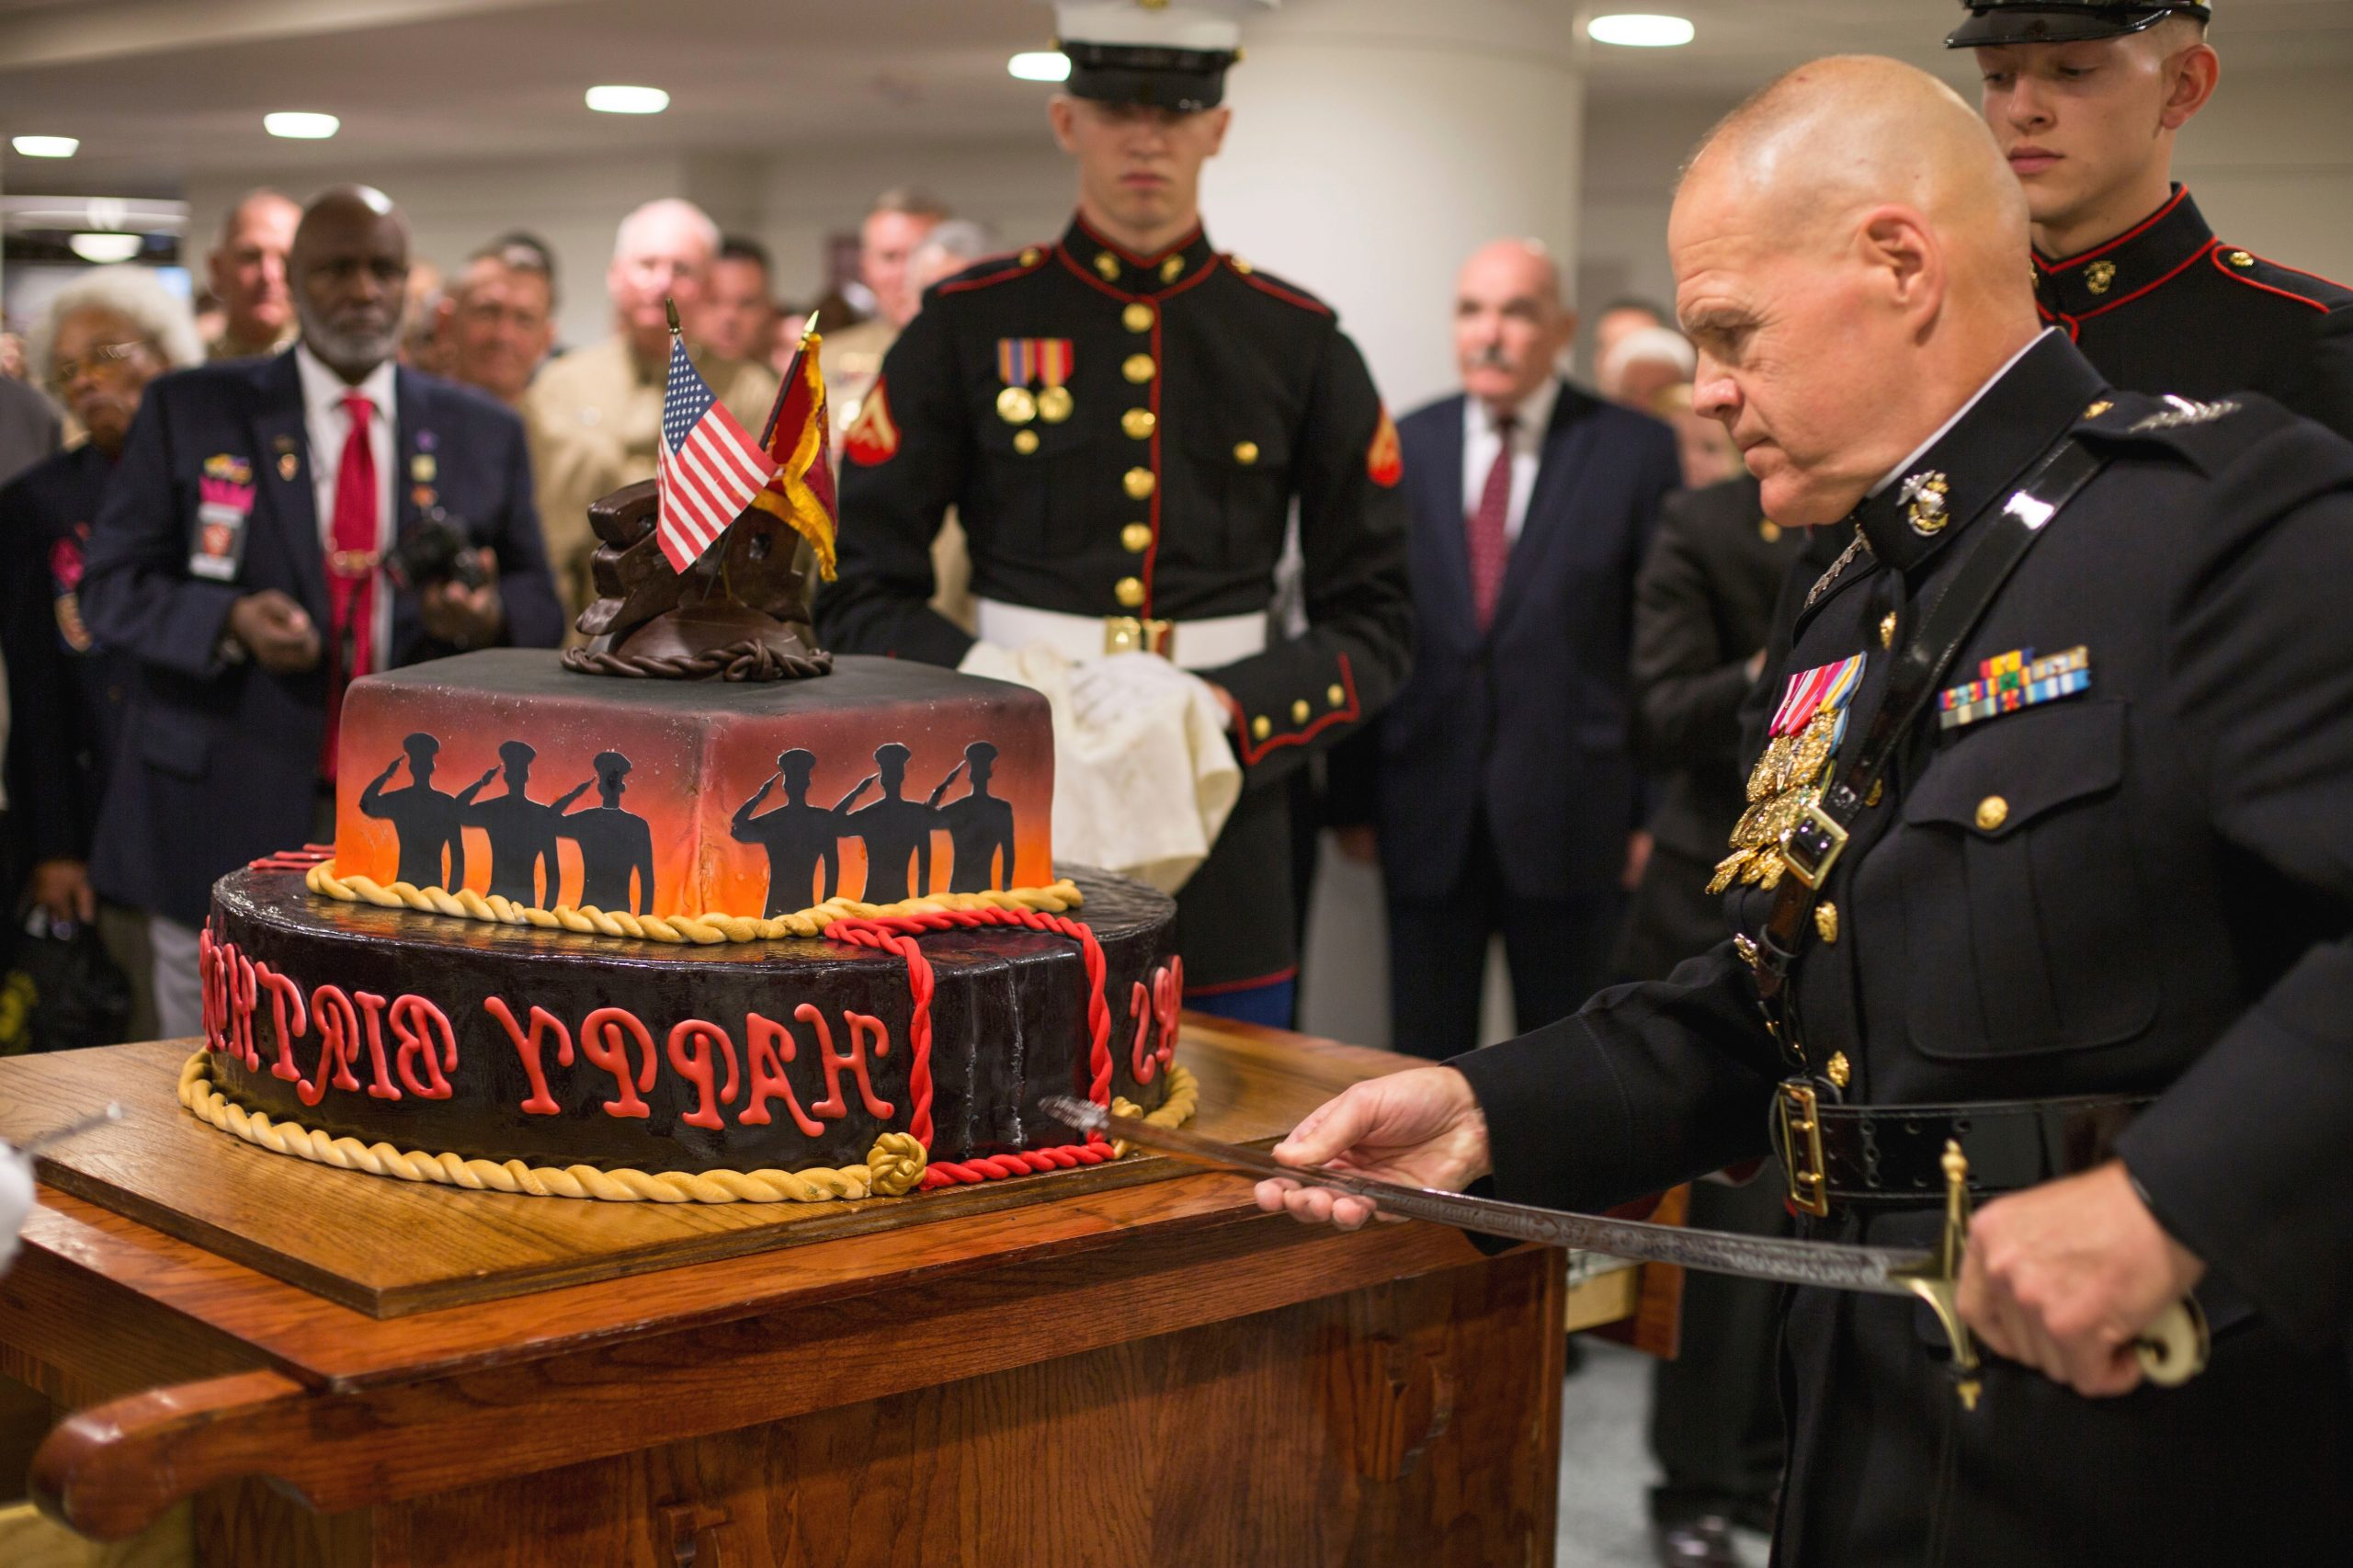 The Marines Top General Spent A Week Cutting Cake And